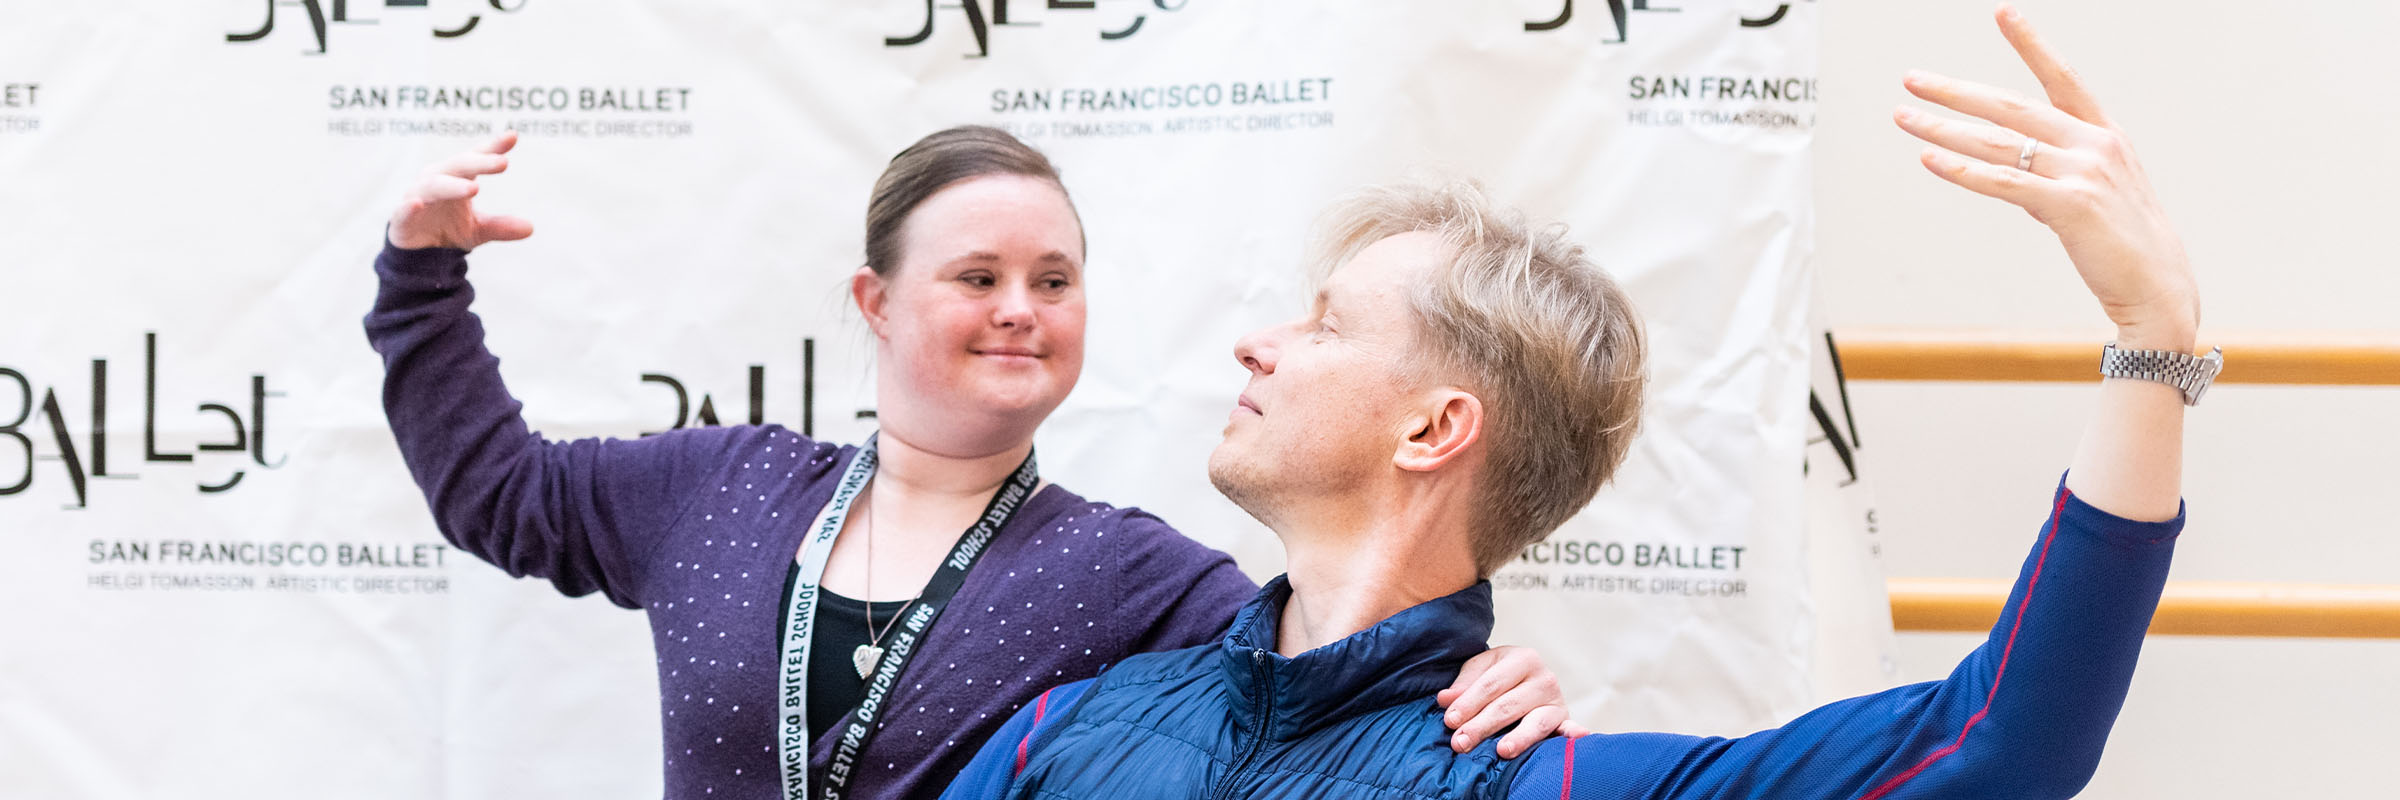 SF Ballet's Sensory Friendly Family Workshop. (© Alex Akamine)